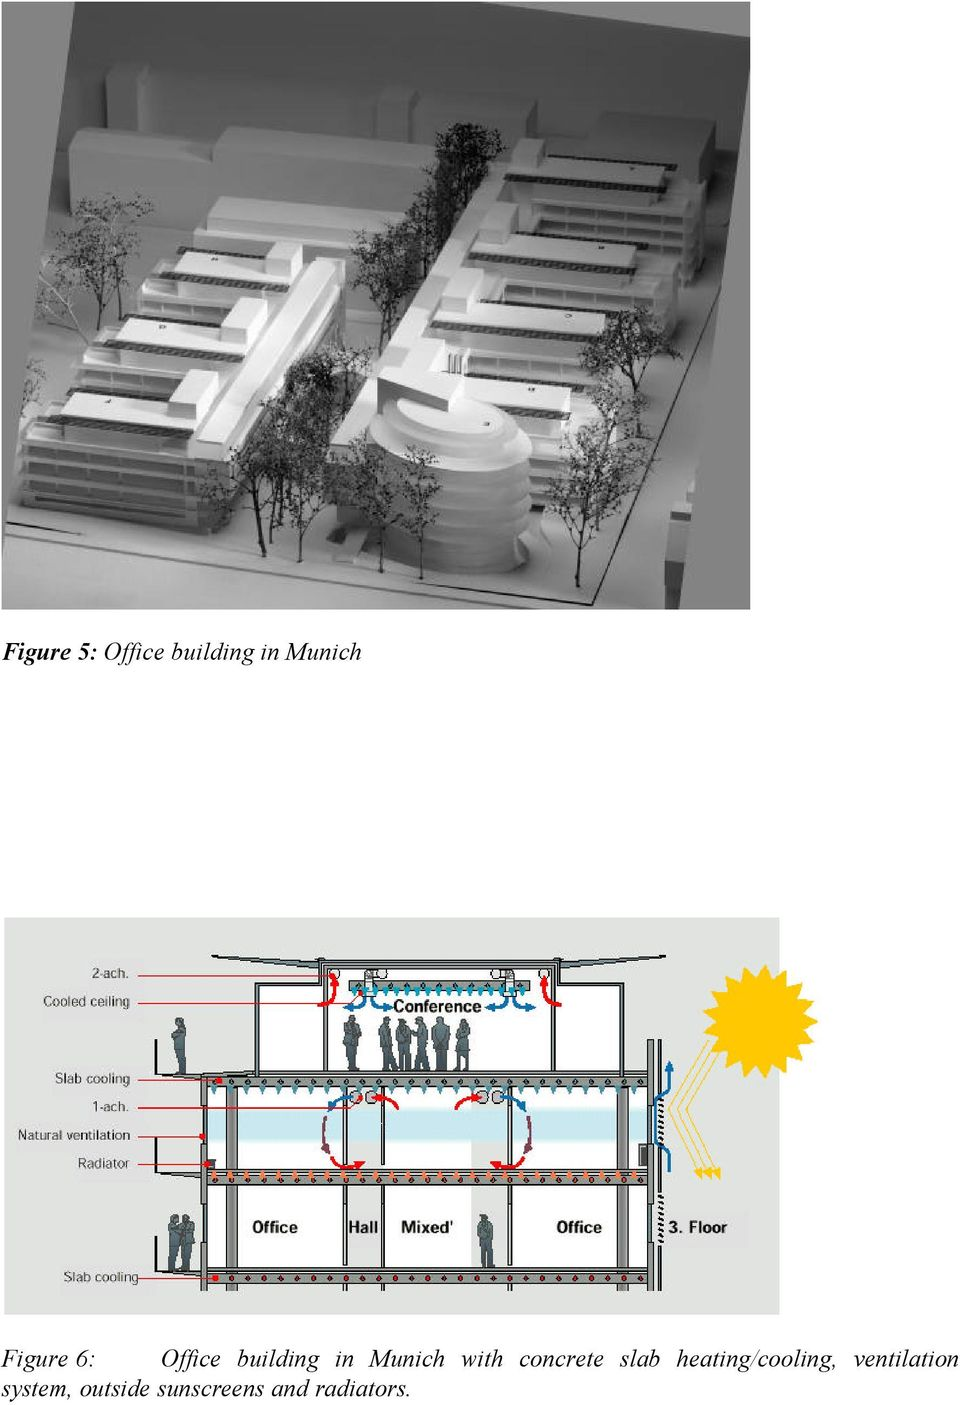 concrete slab heating/cooling,